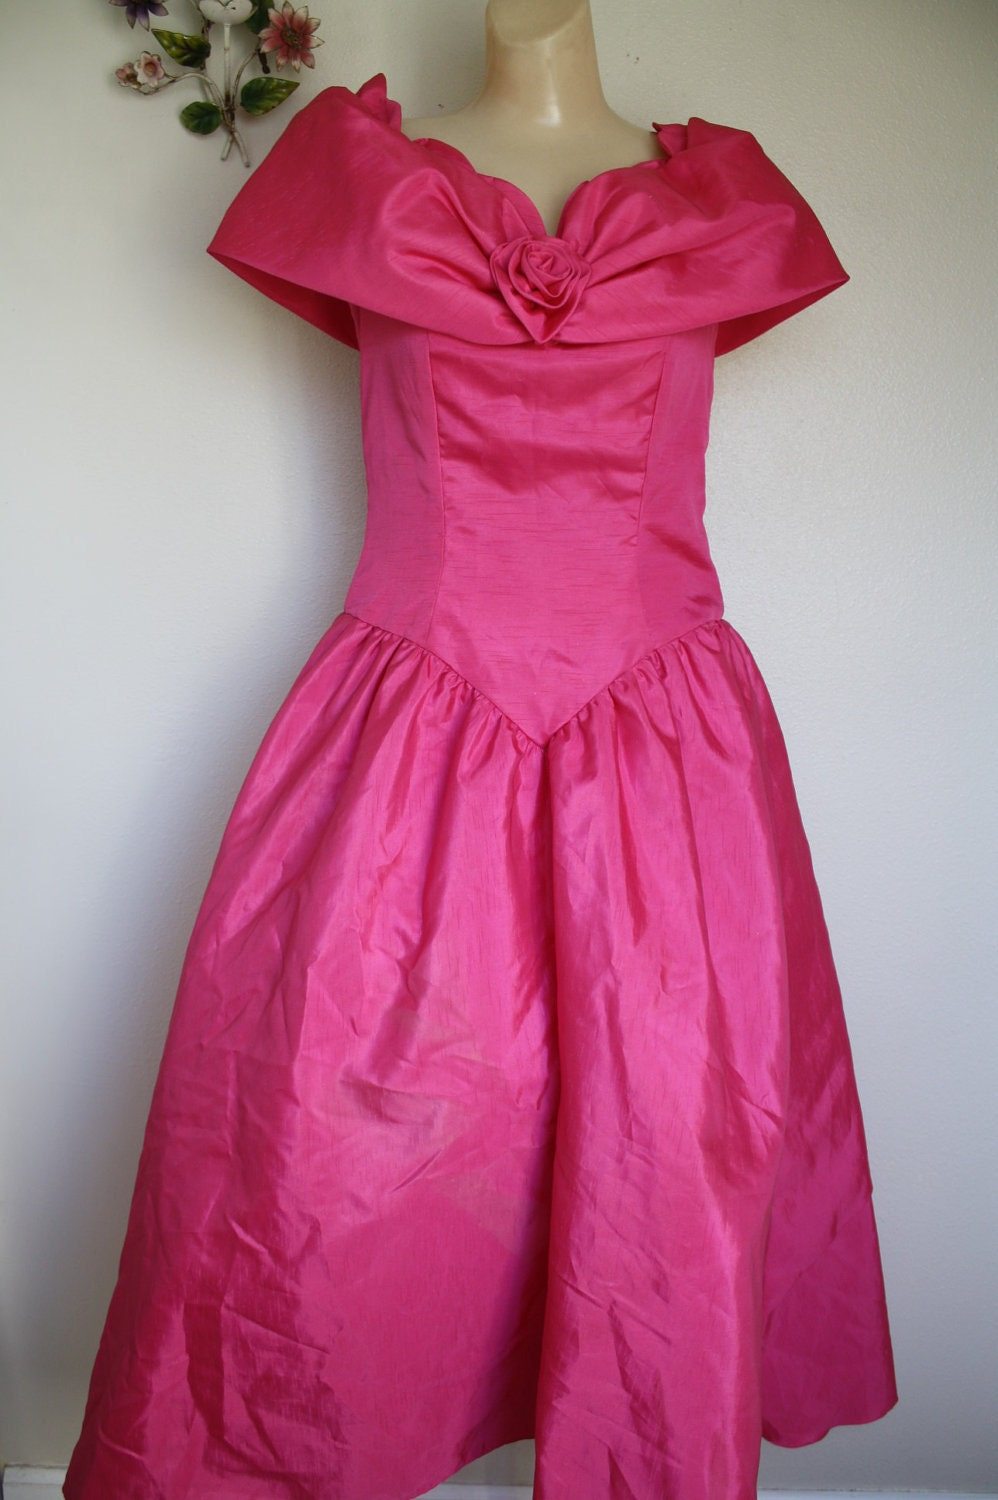 vintage 80's princess pink prom dress SOUTHERN BELLE | 998 x 1500 jpeg 159kB